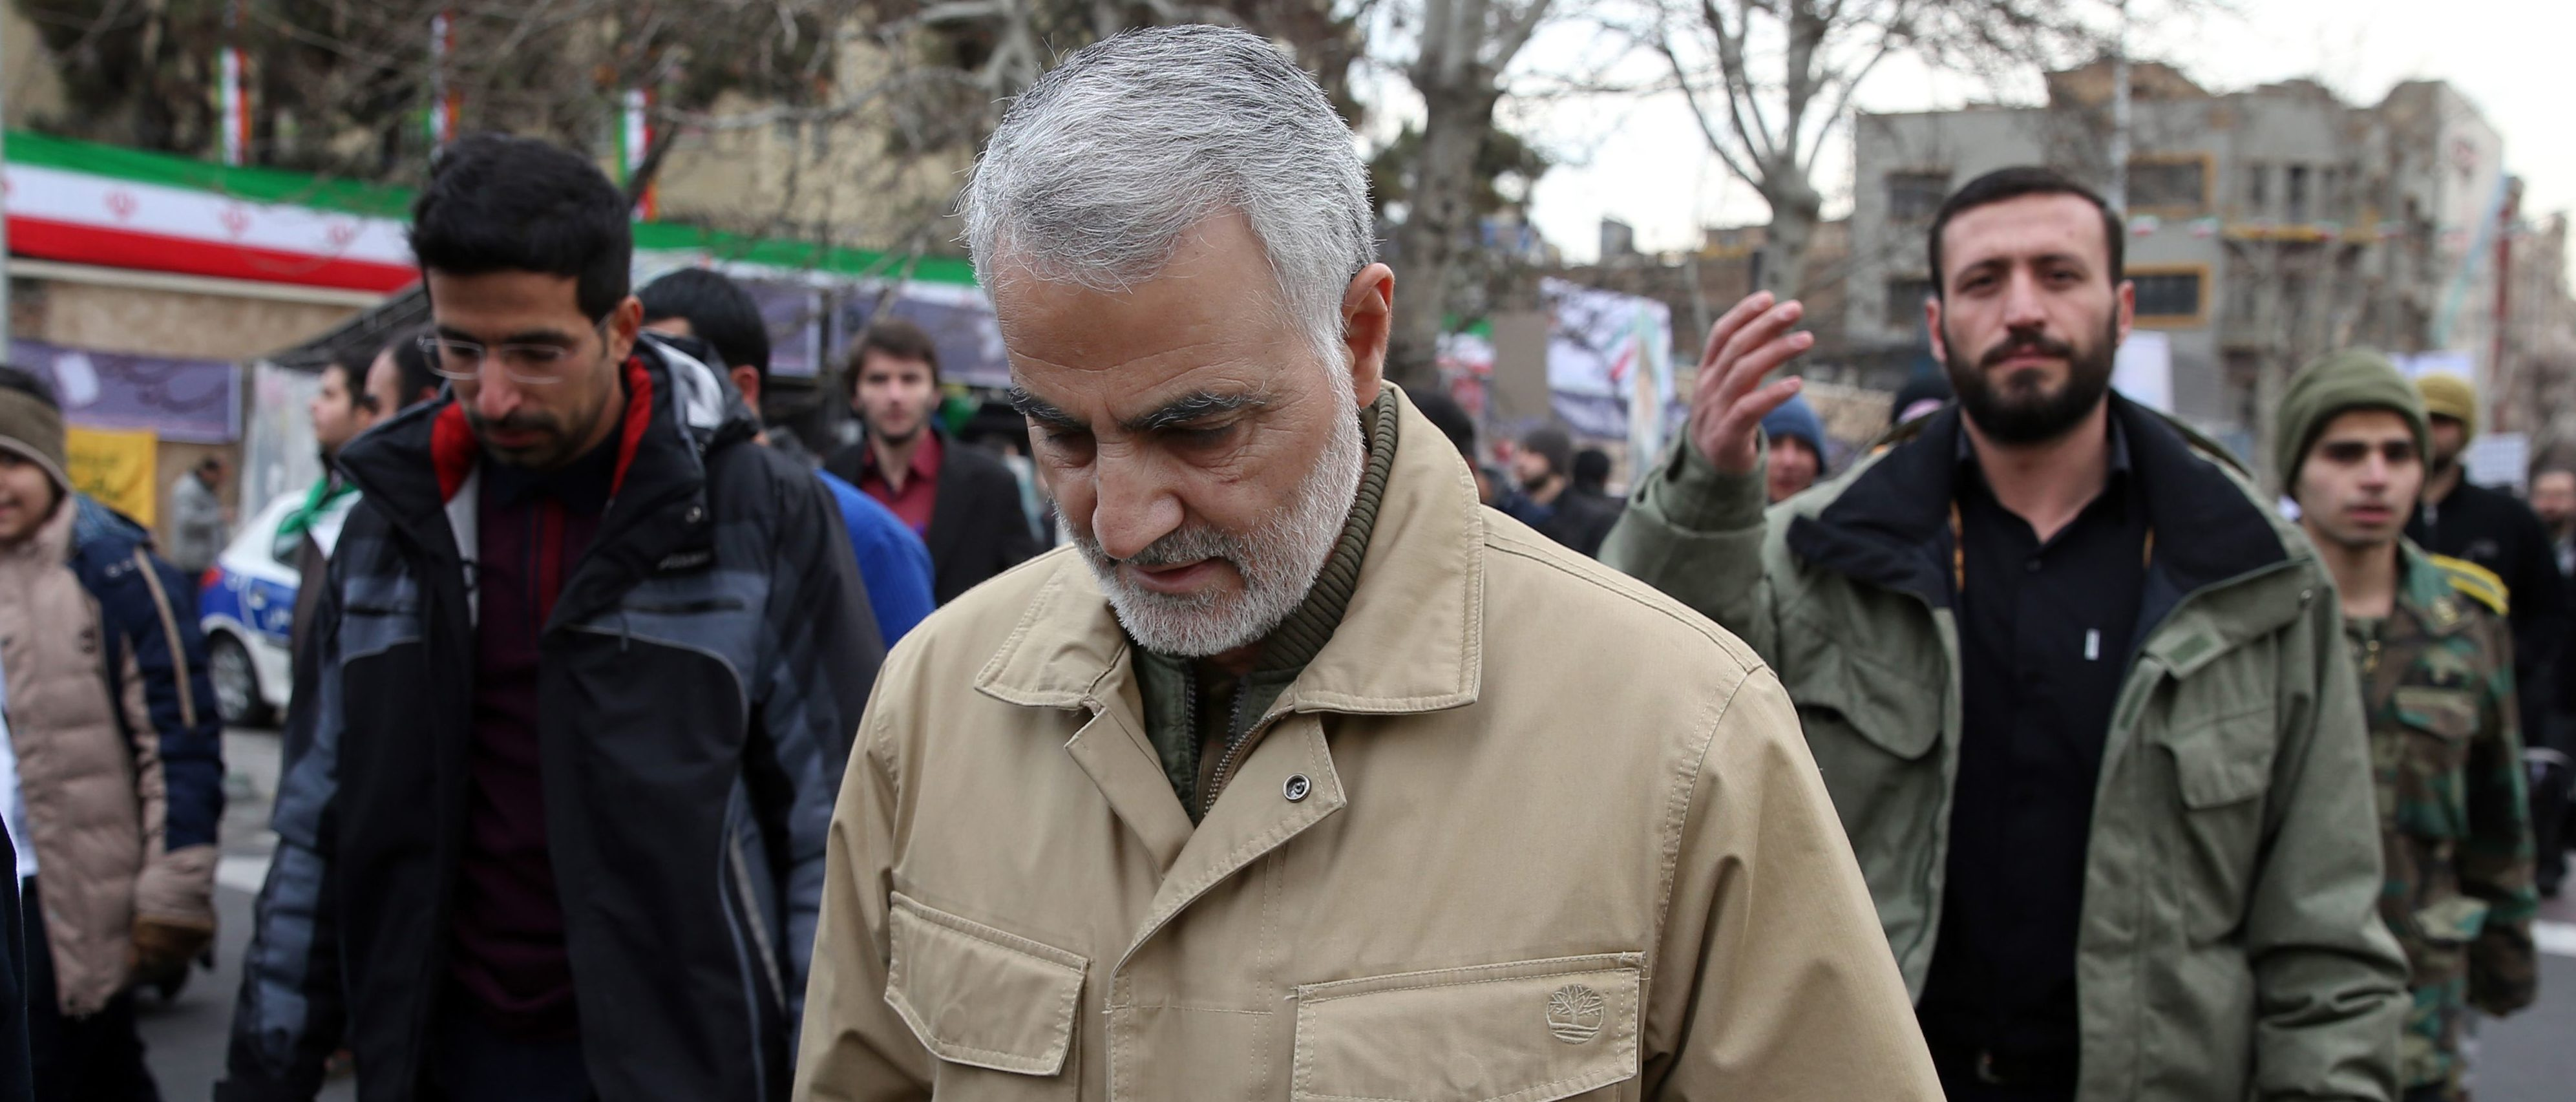 The commander of the Iranian Revolutionary Guard's Quds Force, General Qassem Soleimani, (STR/AFP via Getty Images)